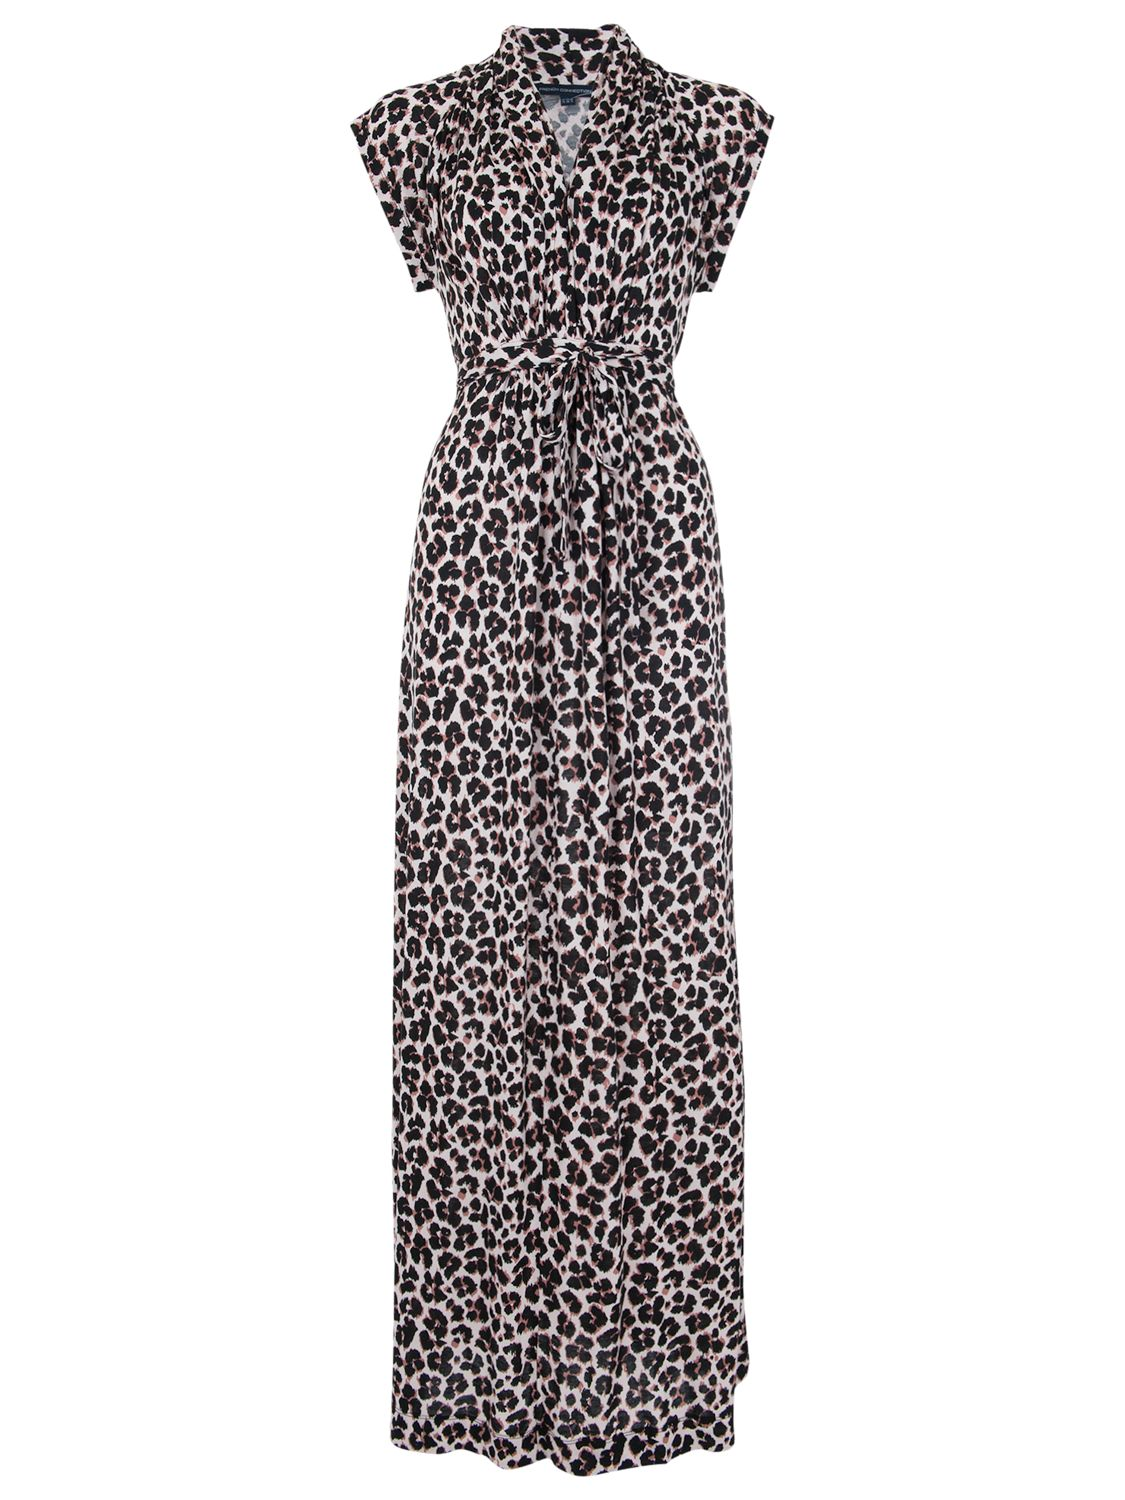 french connection anna jersey maxi dress powder/black, french, connection, anna, jersey, maxi, dress, powder/black, french connection, 16|14|8|10|12|6, women, womens holiday shop, dresses, womens dresses, maxi dresses, 1523279